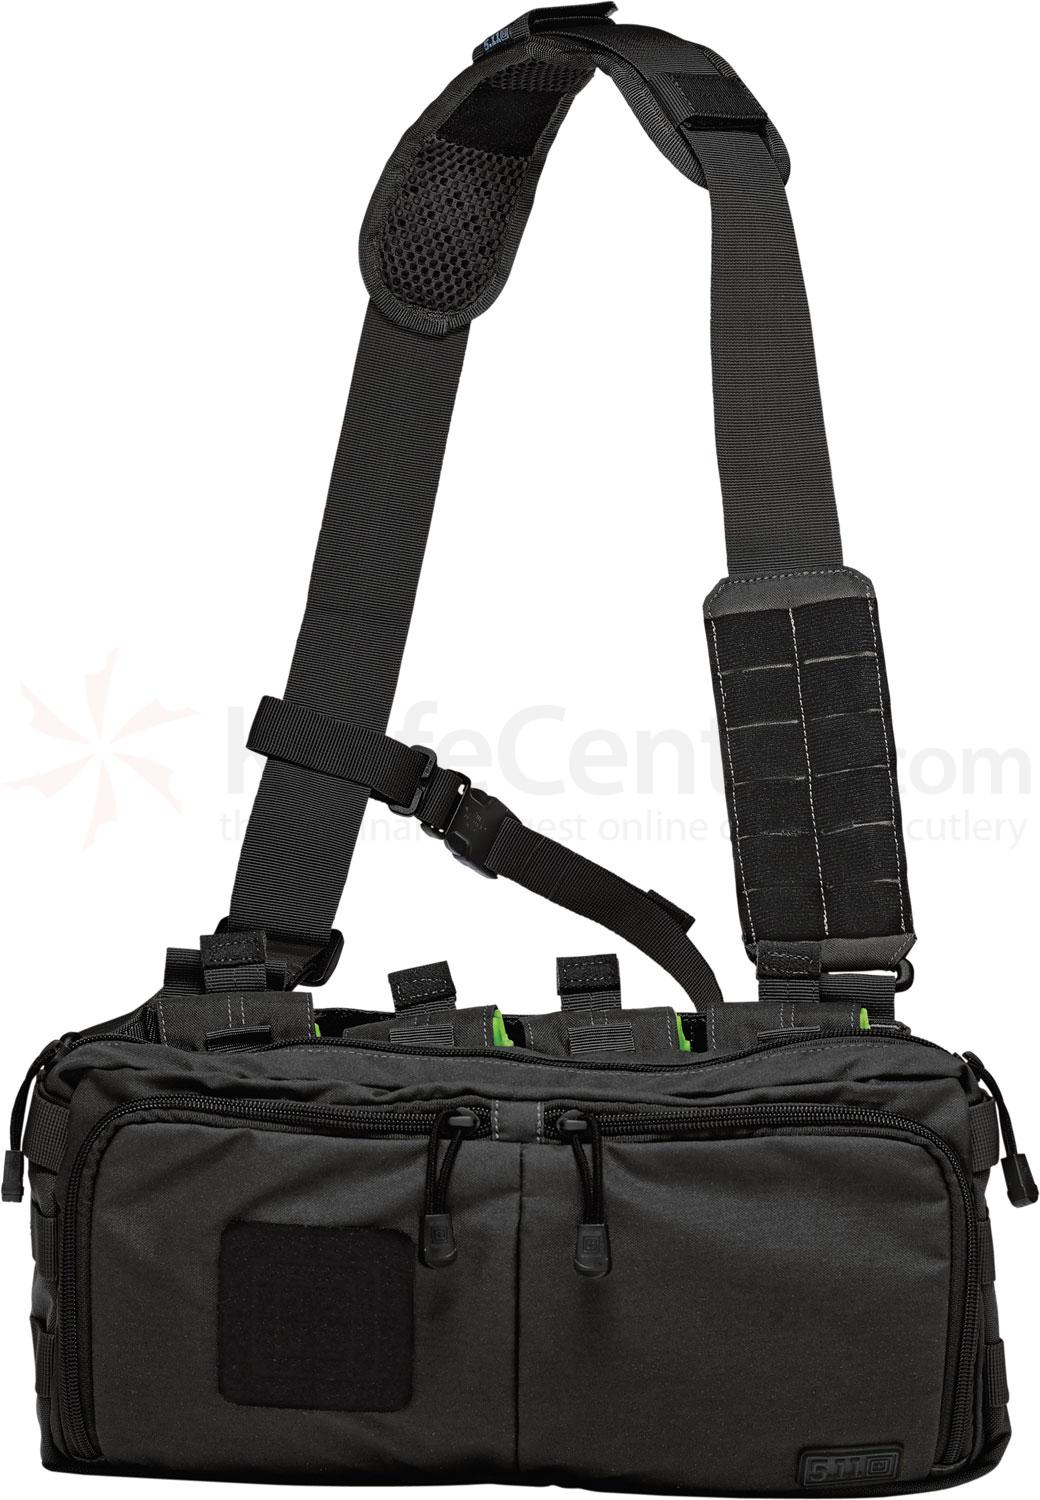 5.11 Tactical 4-Banger Bag, Black (56181-019)